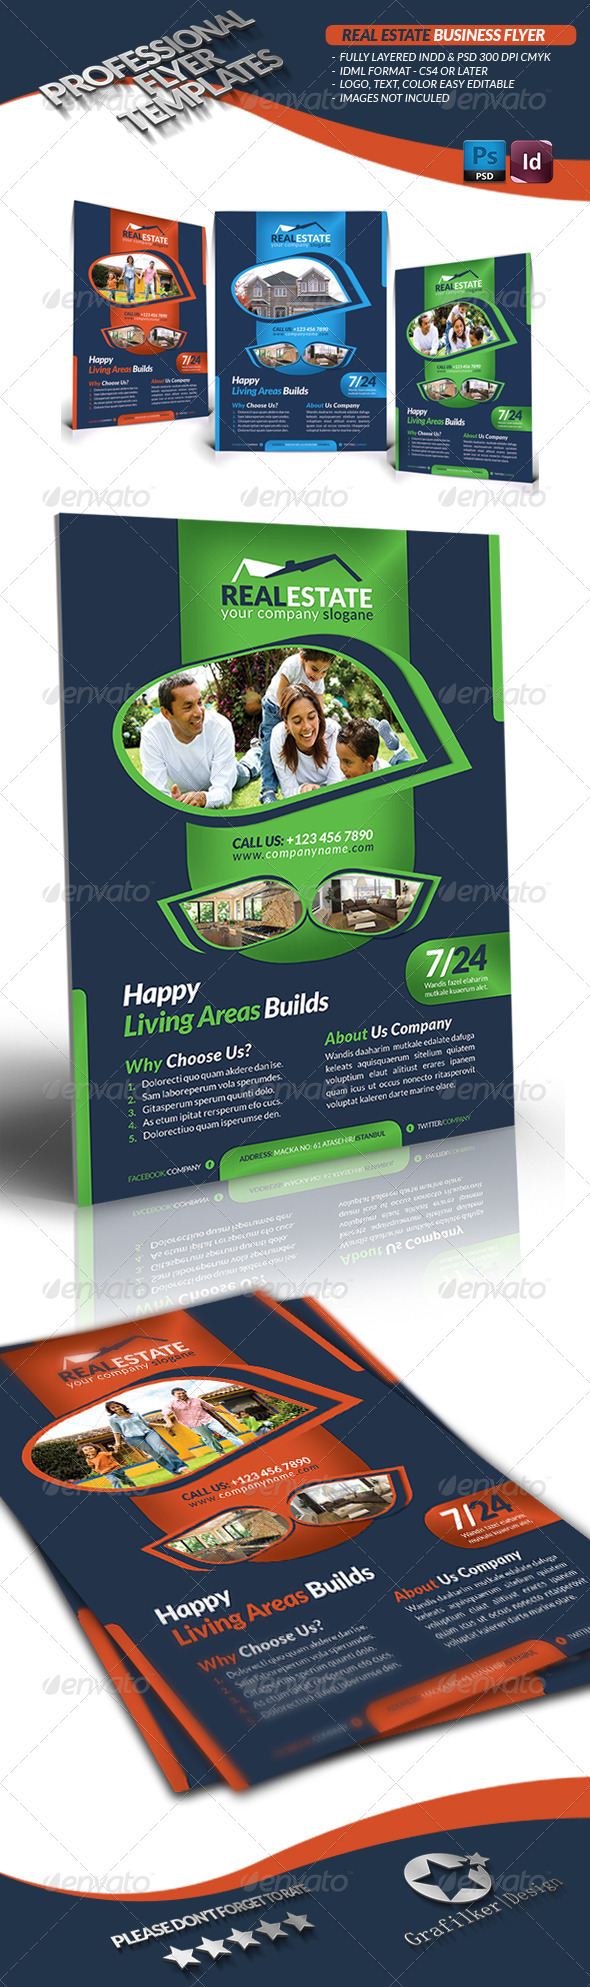 Real Estate Business Flyer  - Commerce Flyers